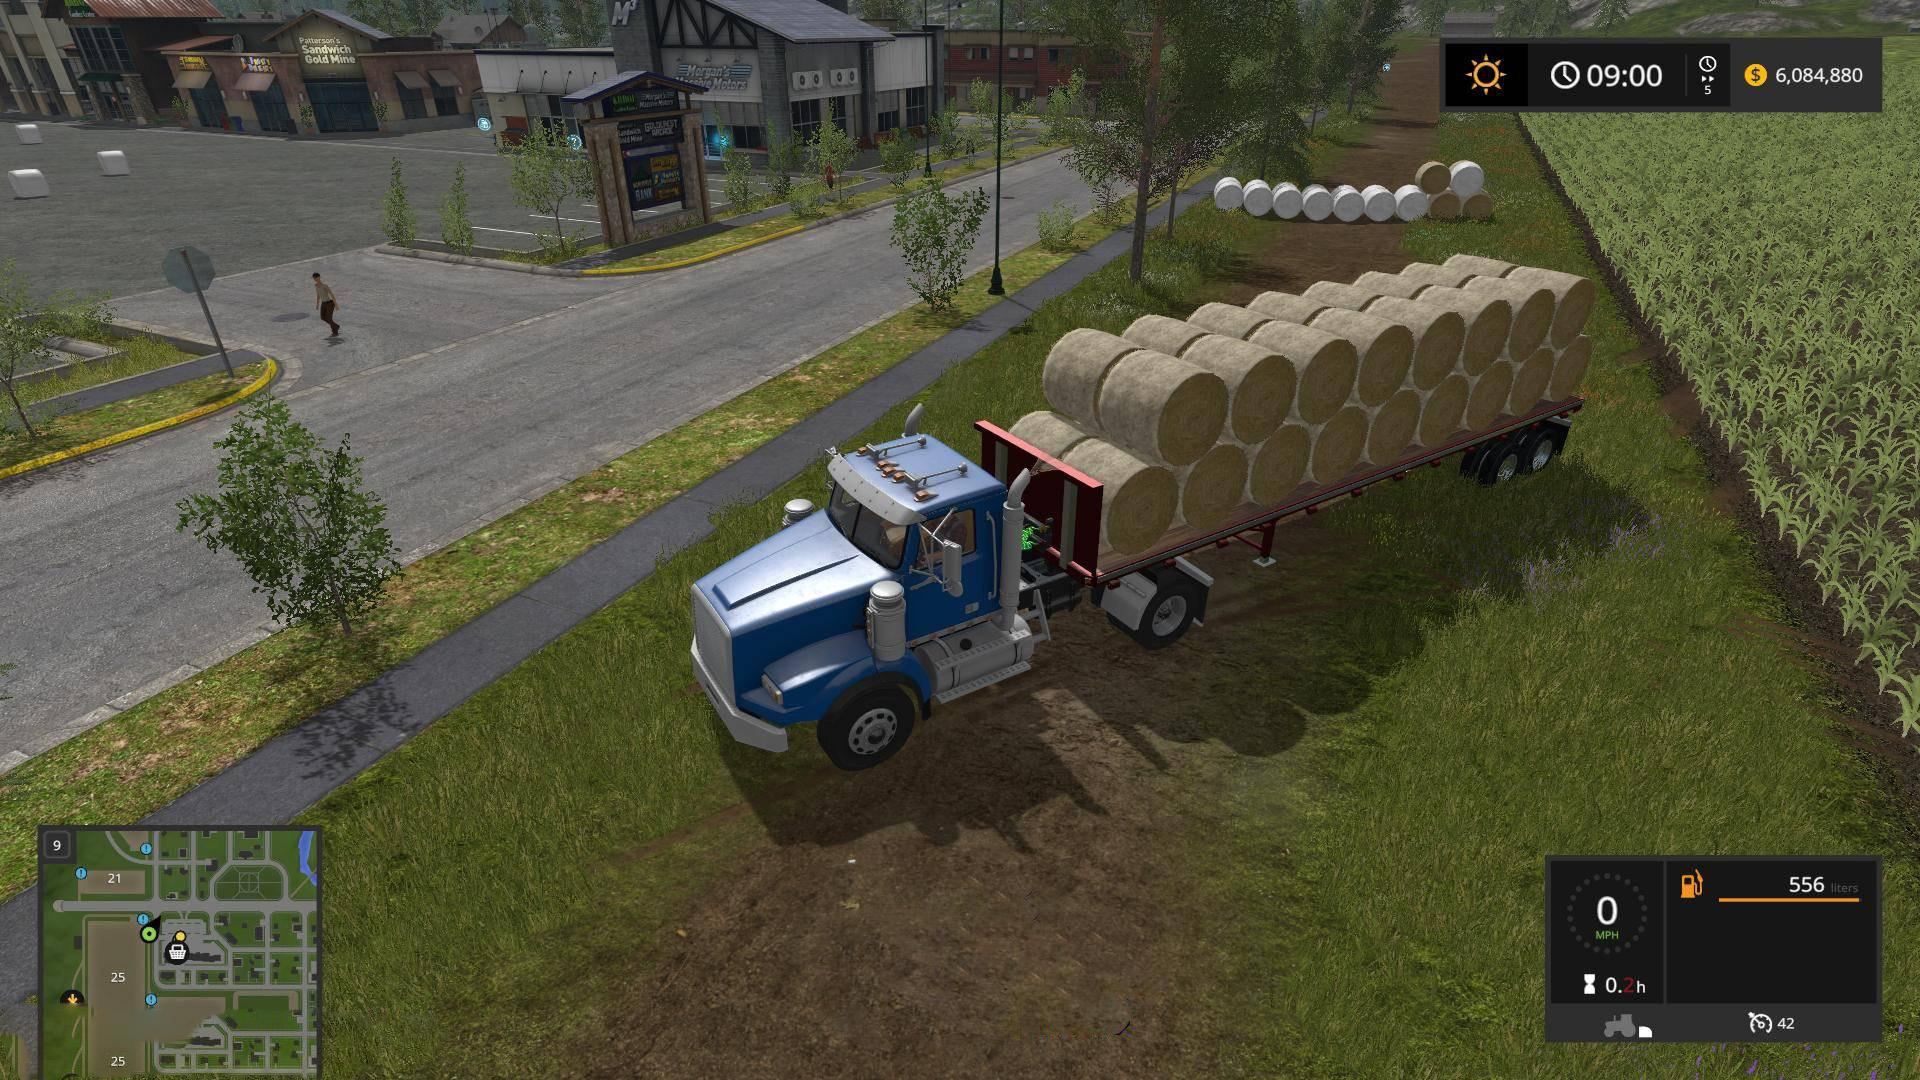 FS19 US Trailer with Autoload Feature - Farming Simulator 19 Mod